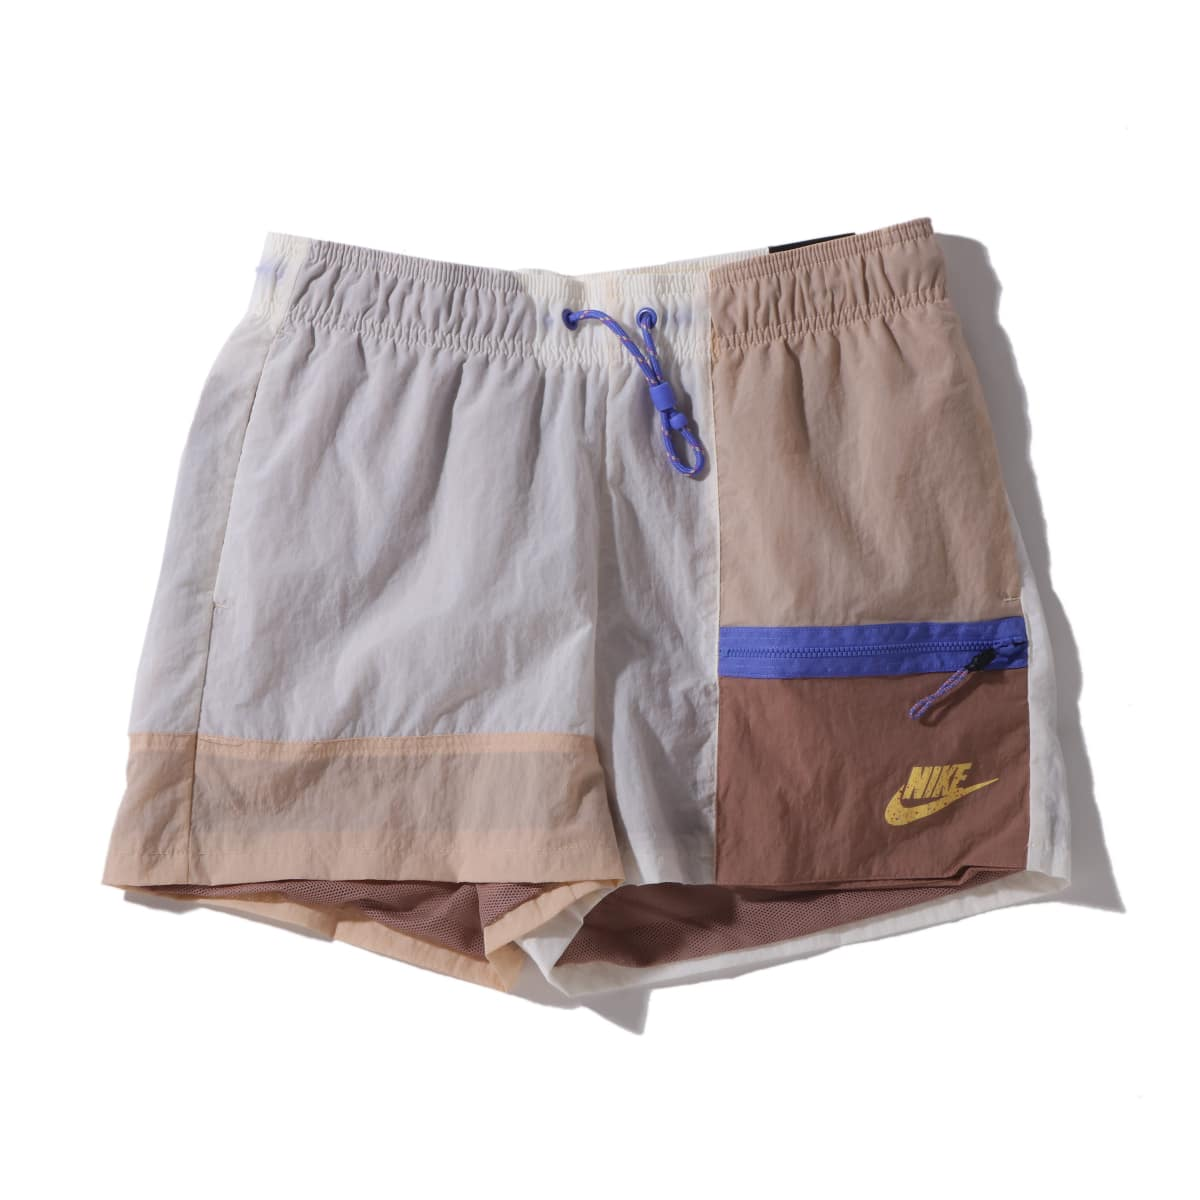 NIKE AS W NSW ICN CLSH SHORT PALE IVORY/SHIMMER/DESERT DUST 20SU-I_photo_large